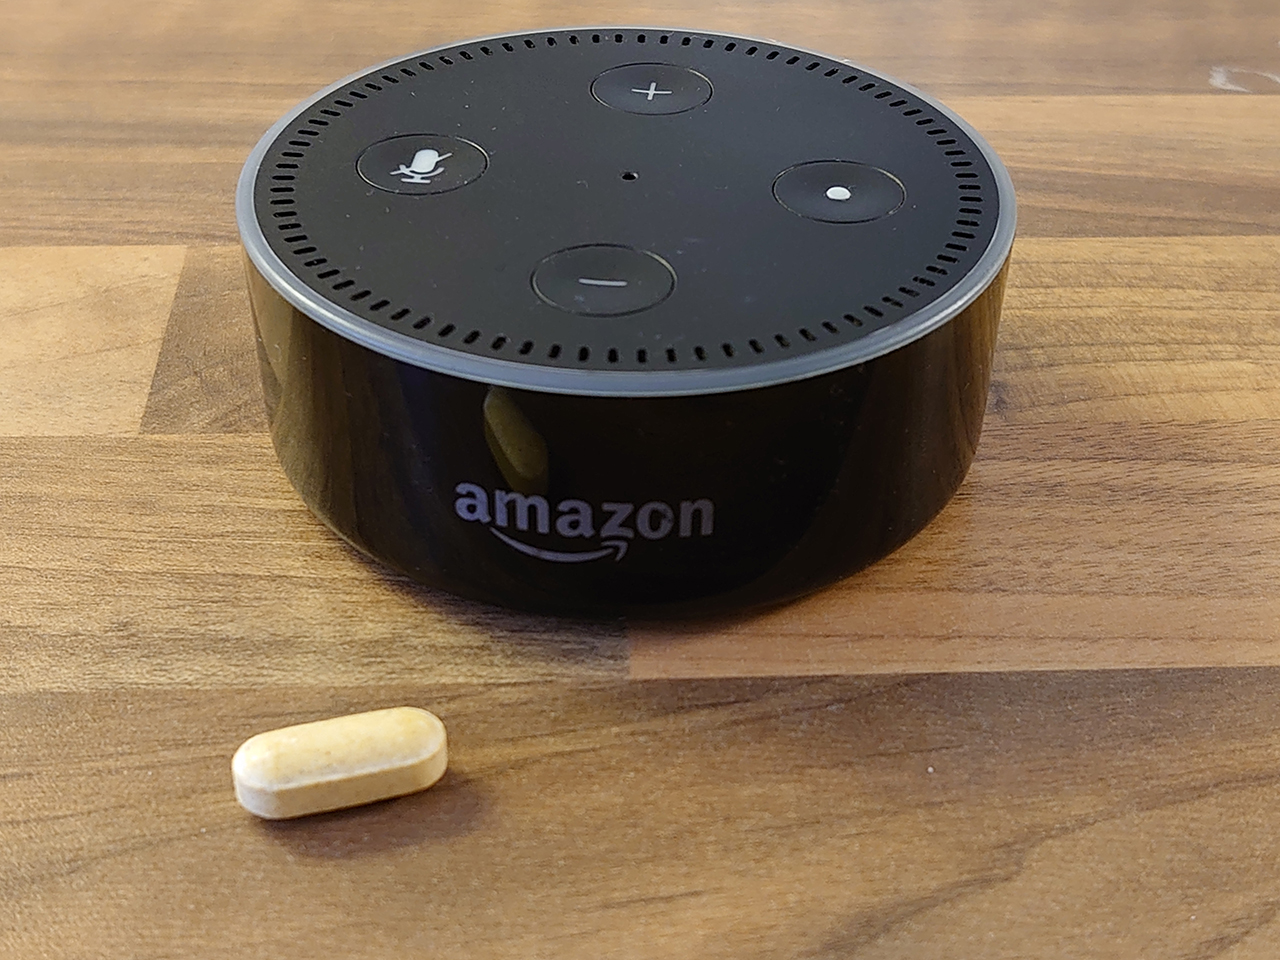 Amazon Dot running Alexa next to a pill